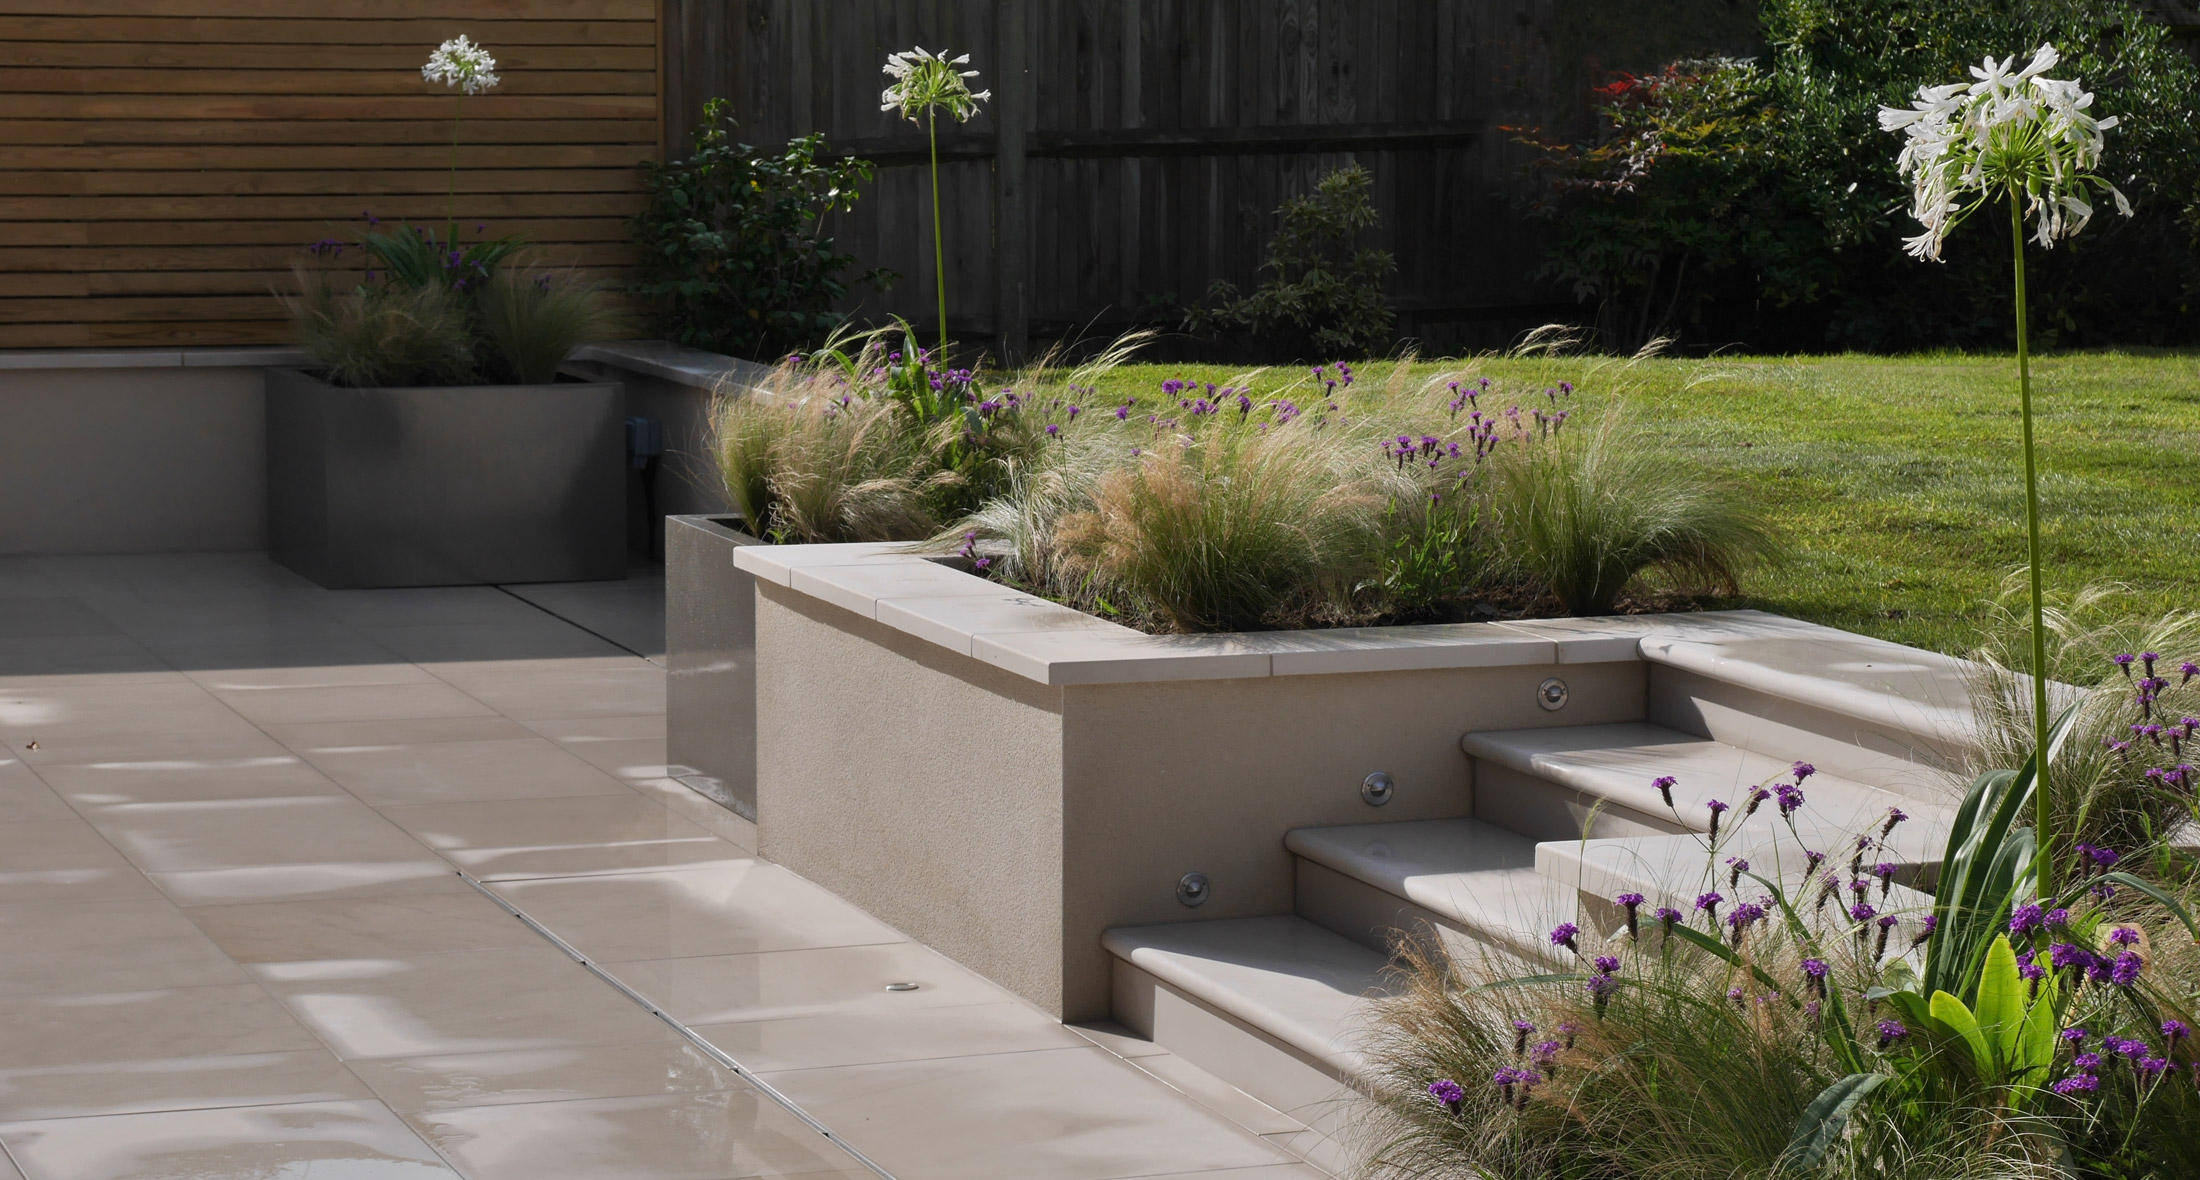 A Slate Grey Garden Design U0026 Landscaping Patio Showing Raised Edging And  Containers